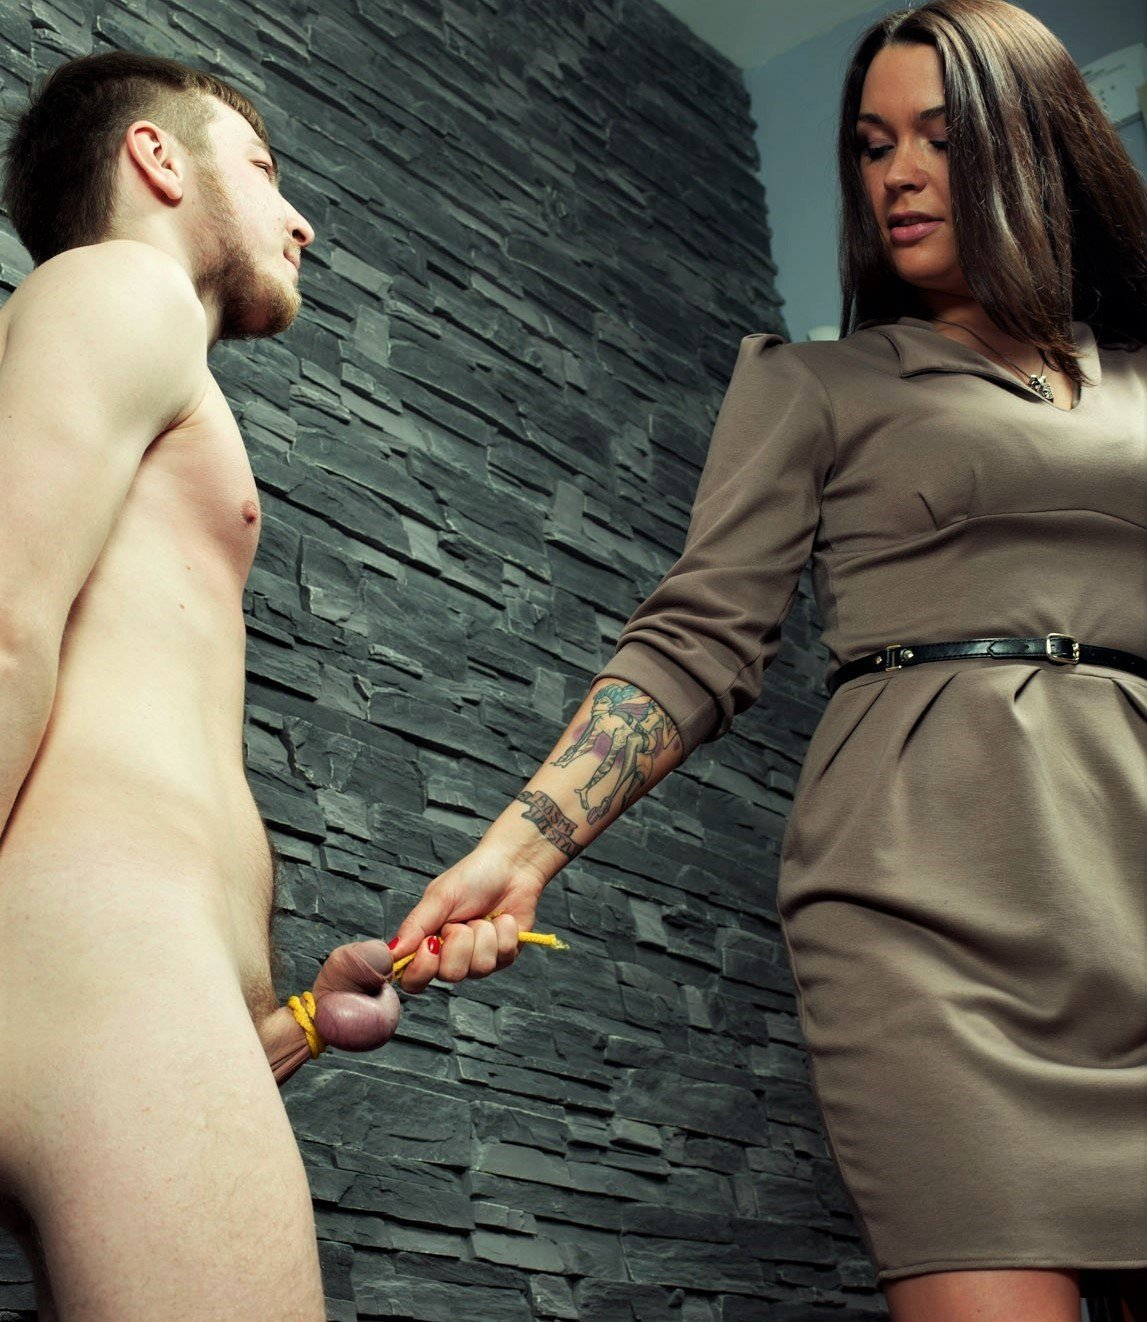 Russian Mistress Slaps And Forces Slave To Lick Her Boots